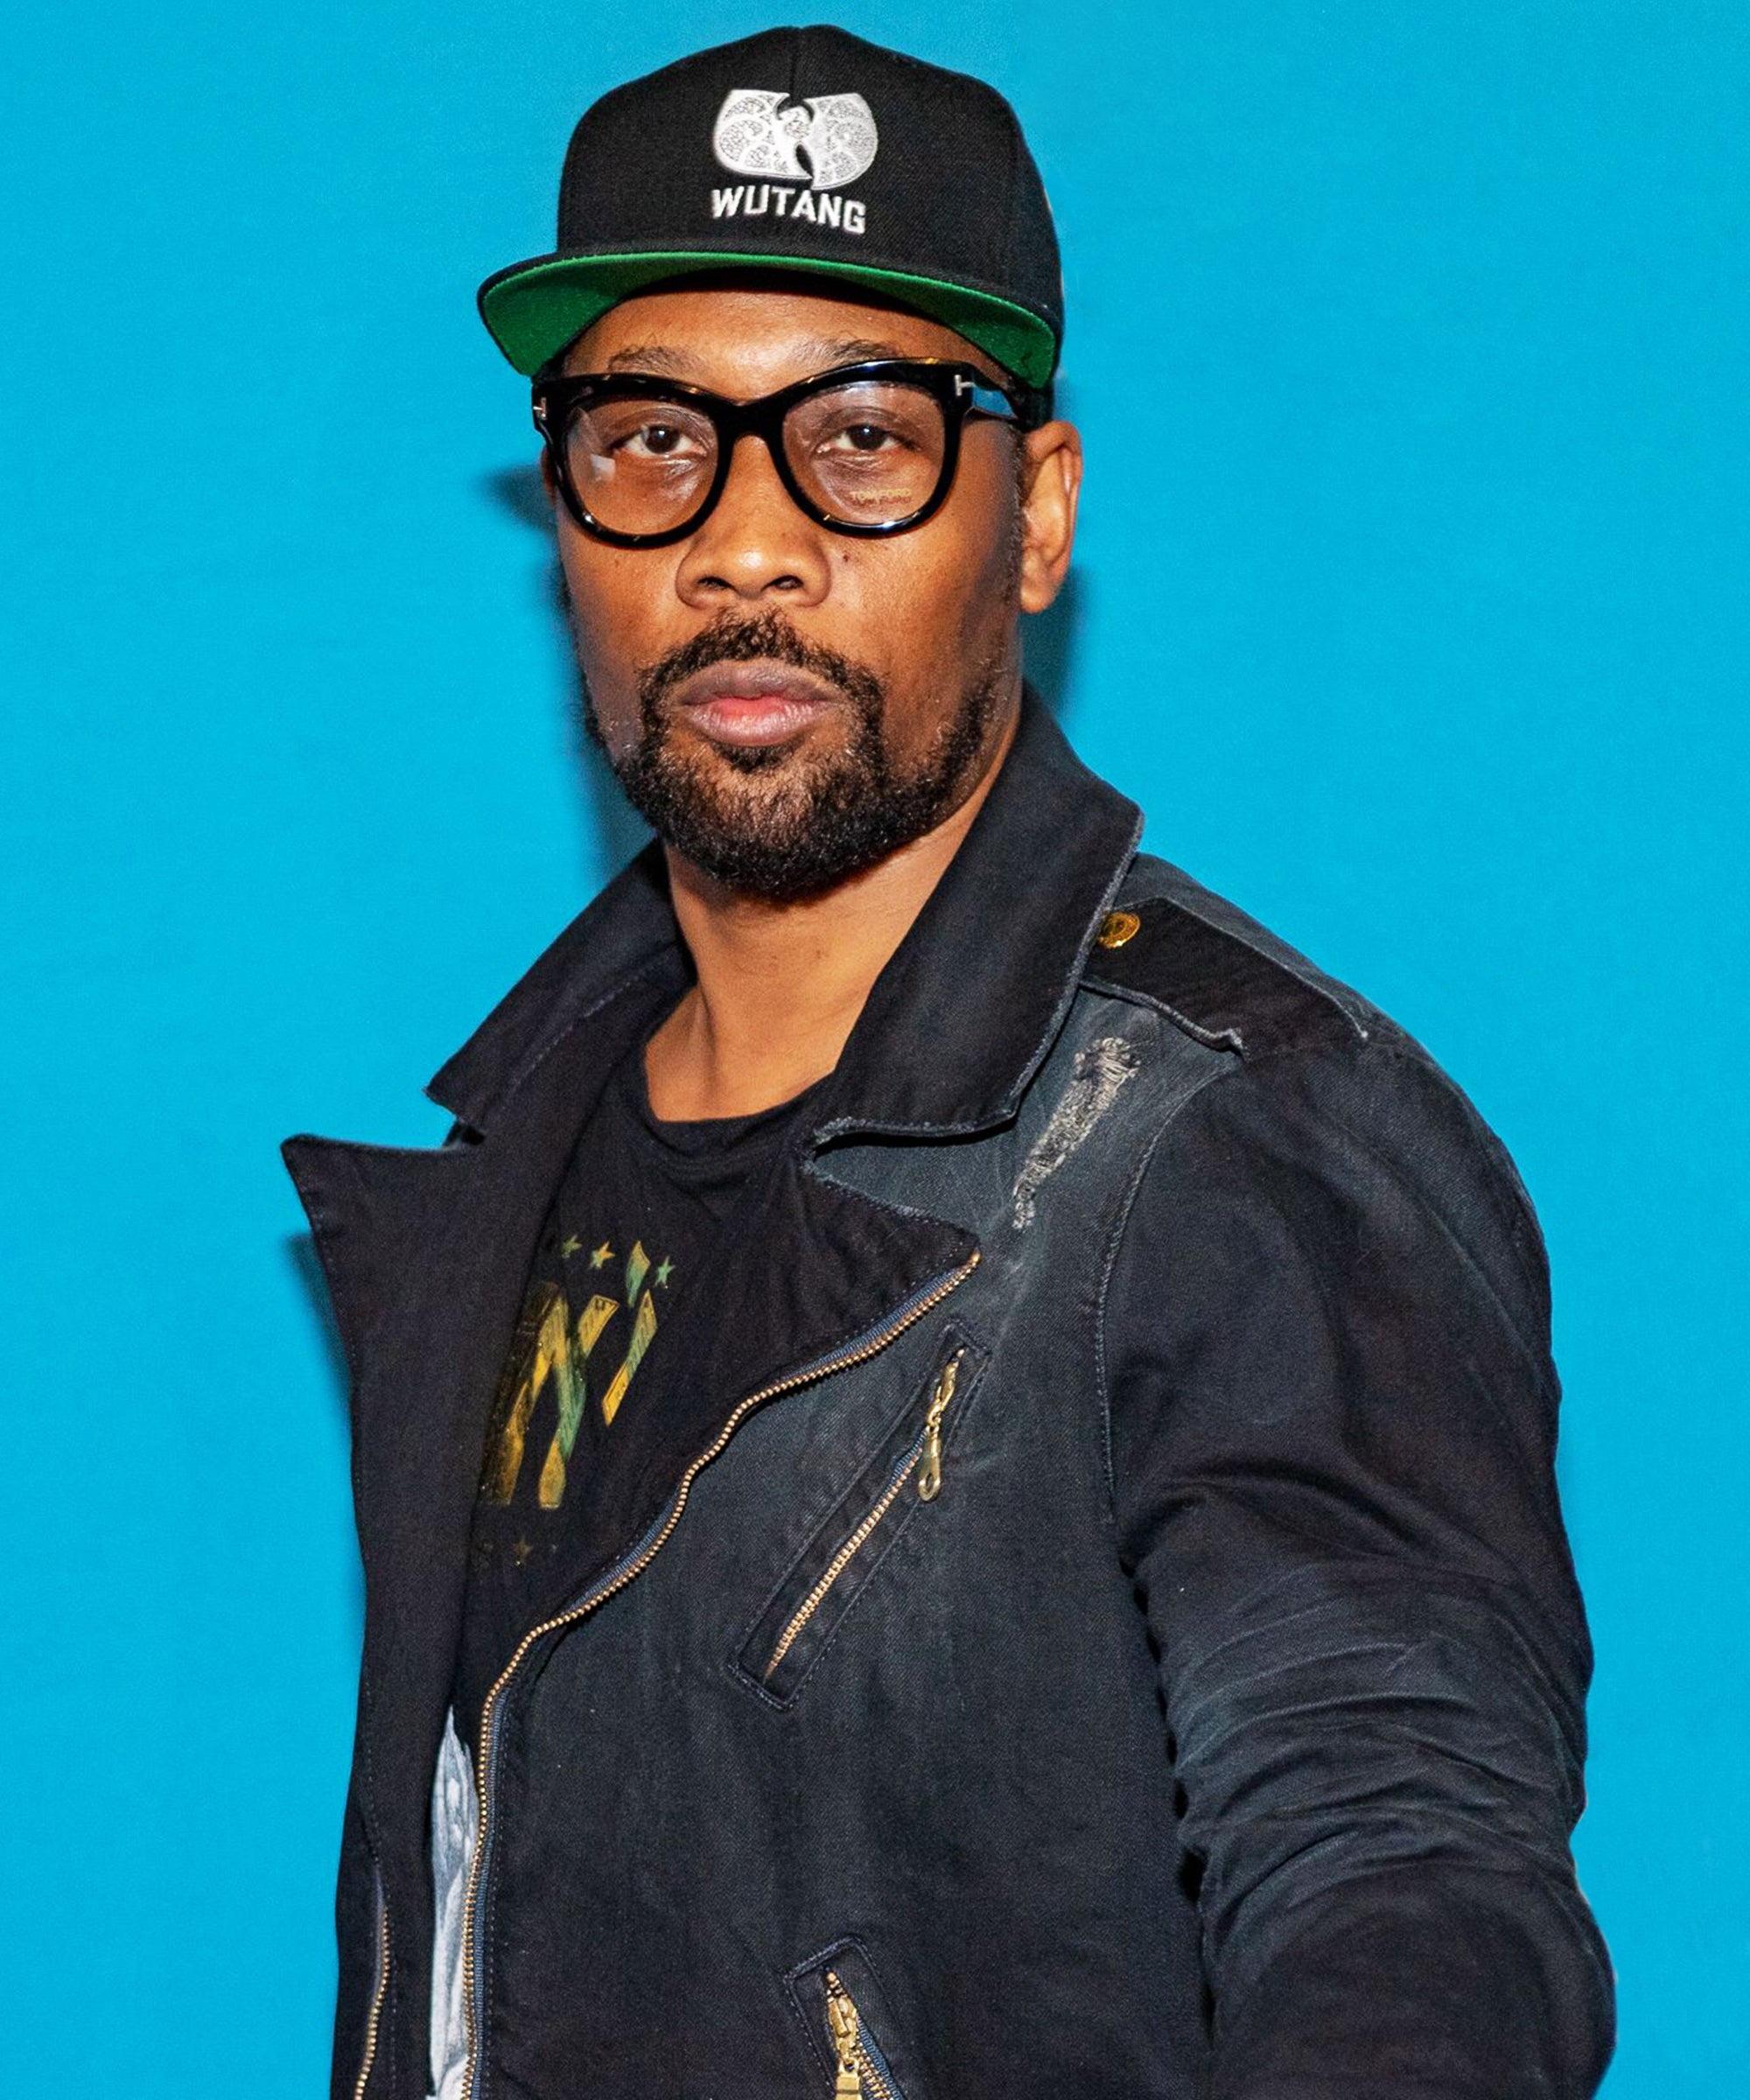 Hulu's Wu-Tang Series & The True Story Of How RZA Became RZA